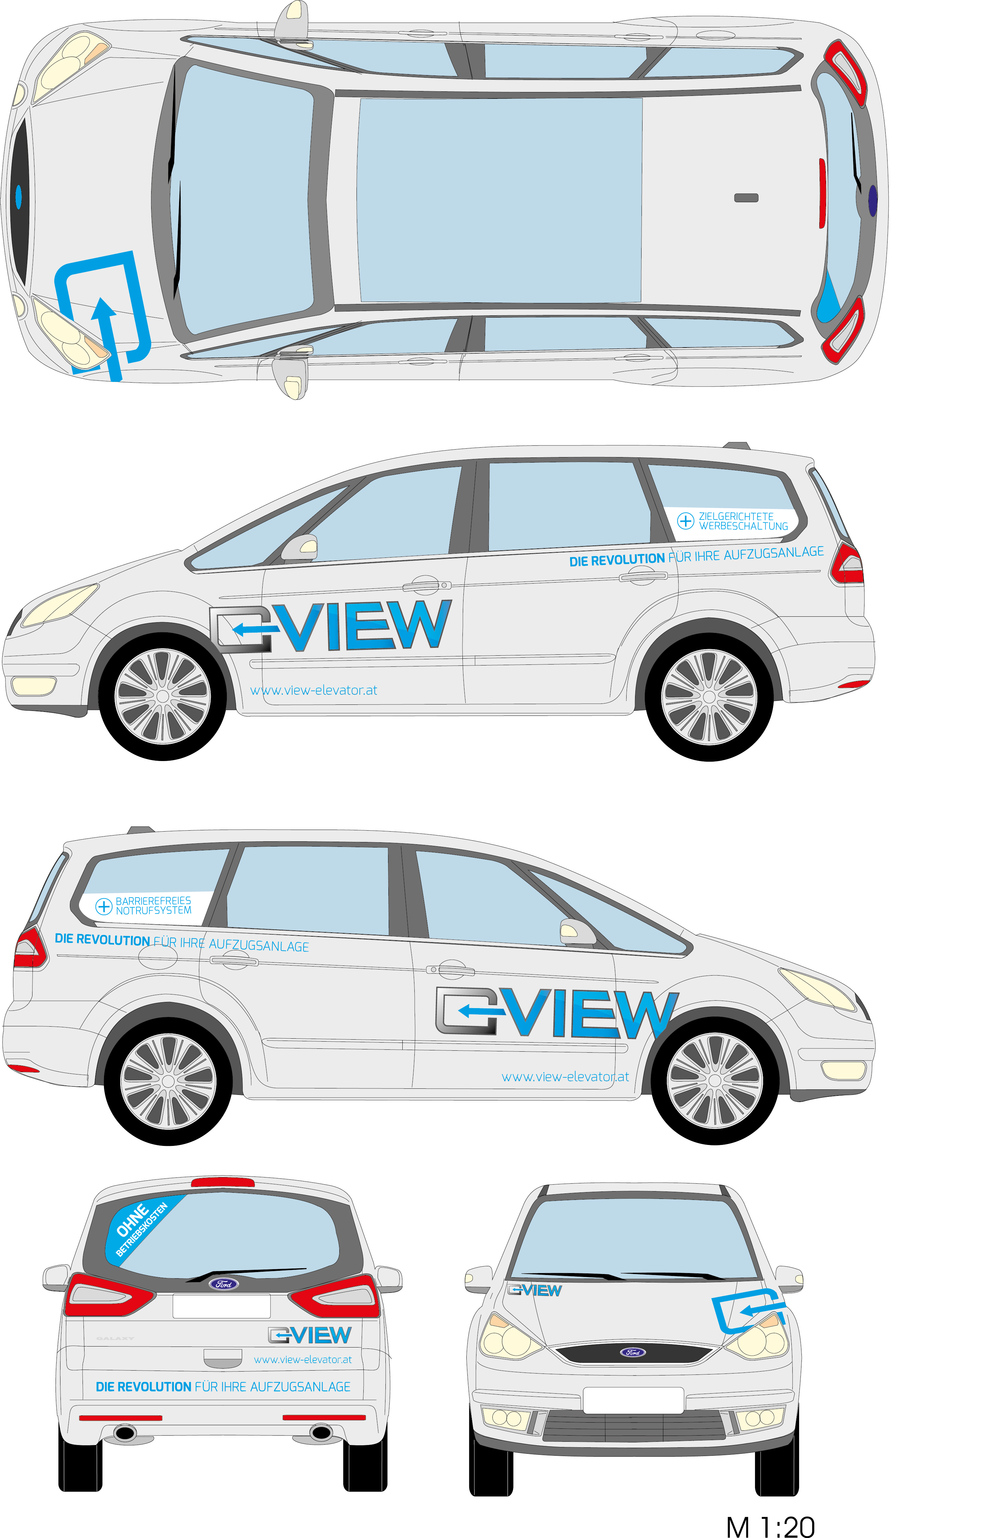 View_FordGalaxy_2006__v3.jpg